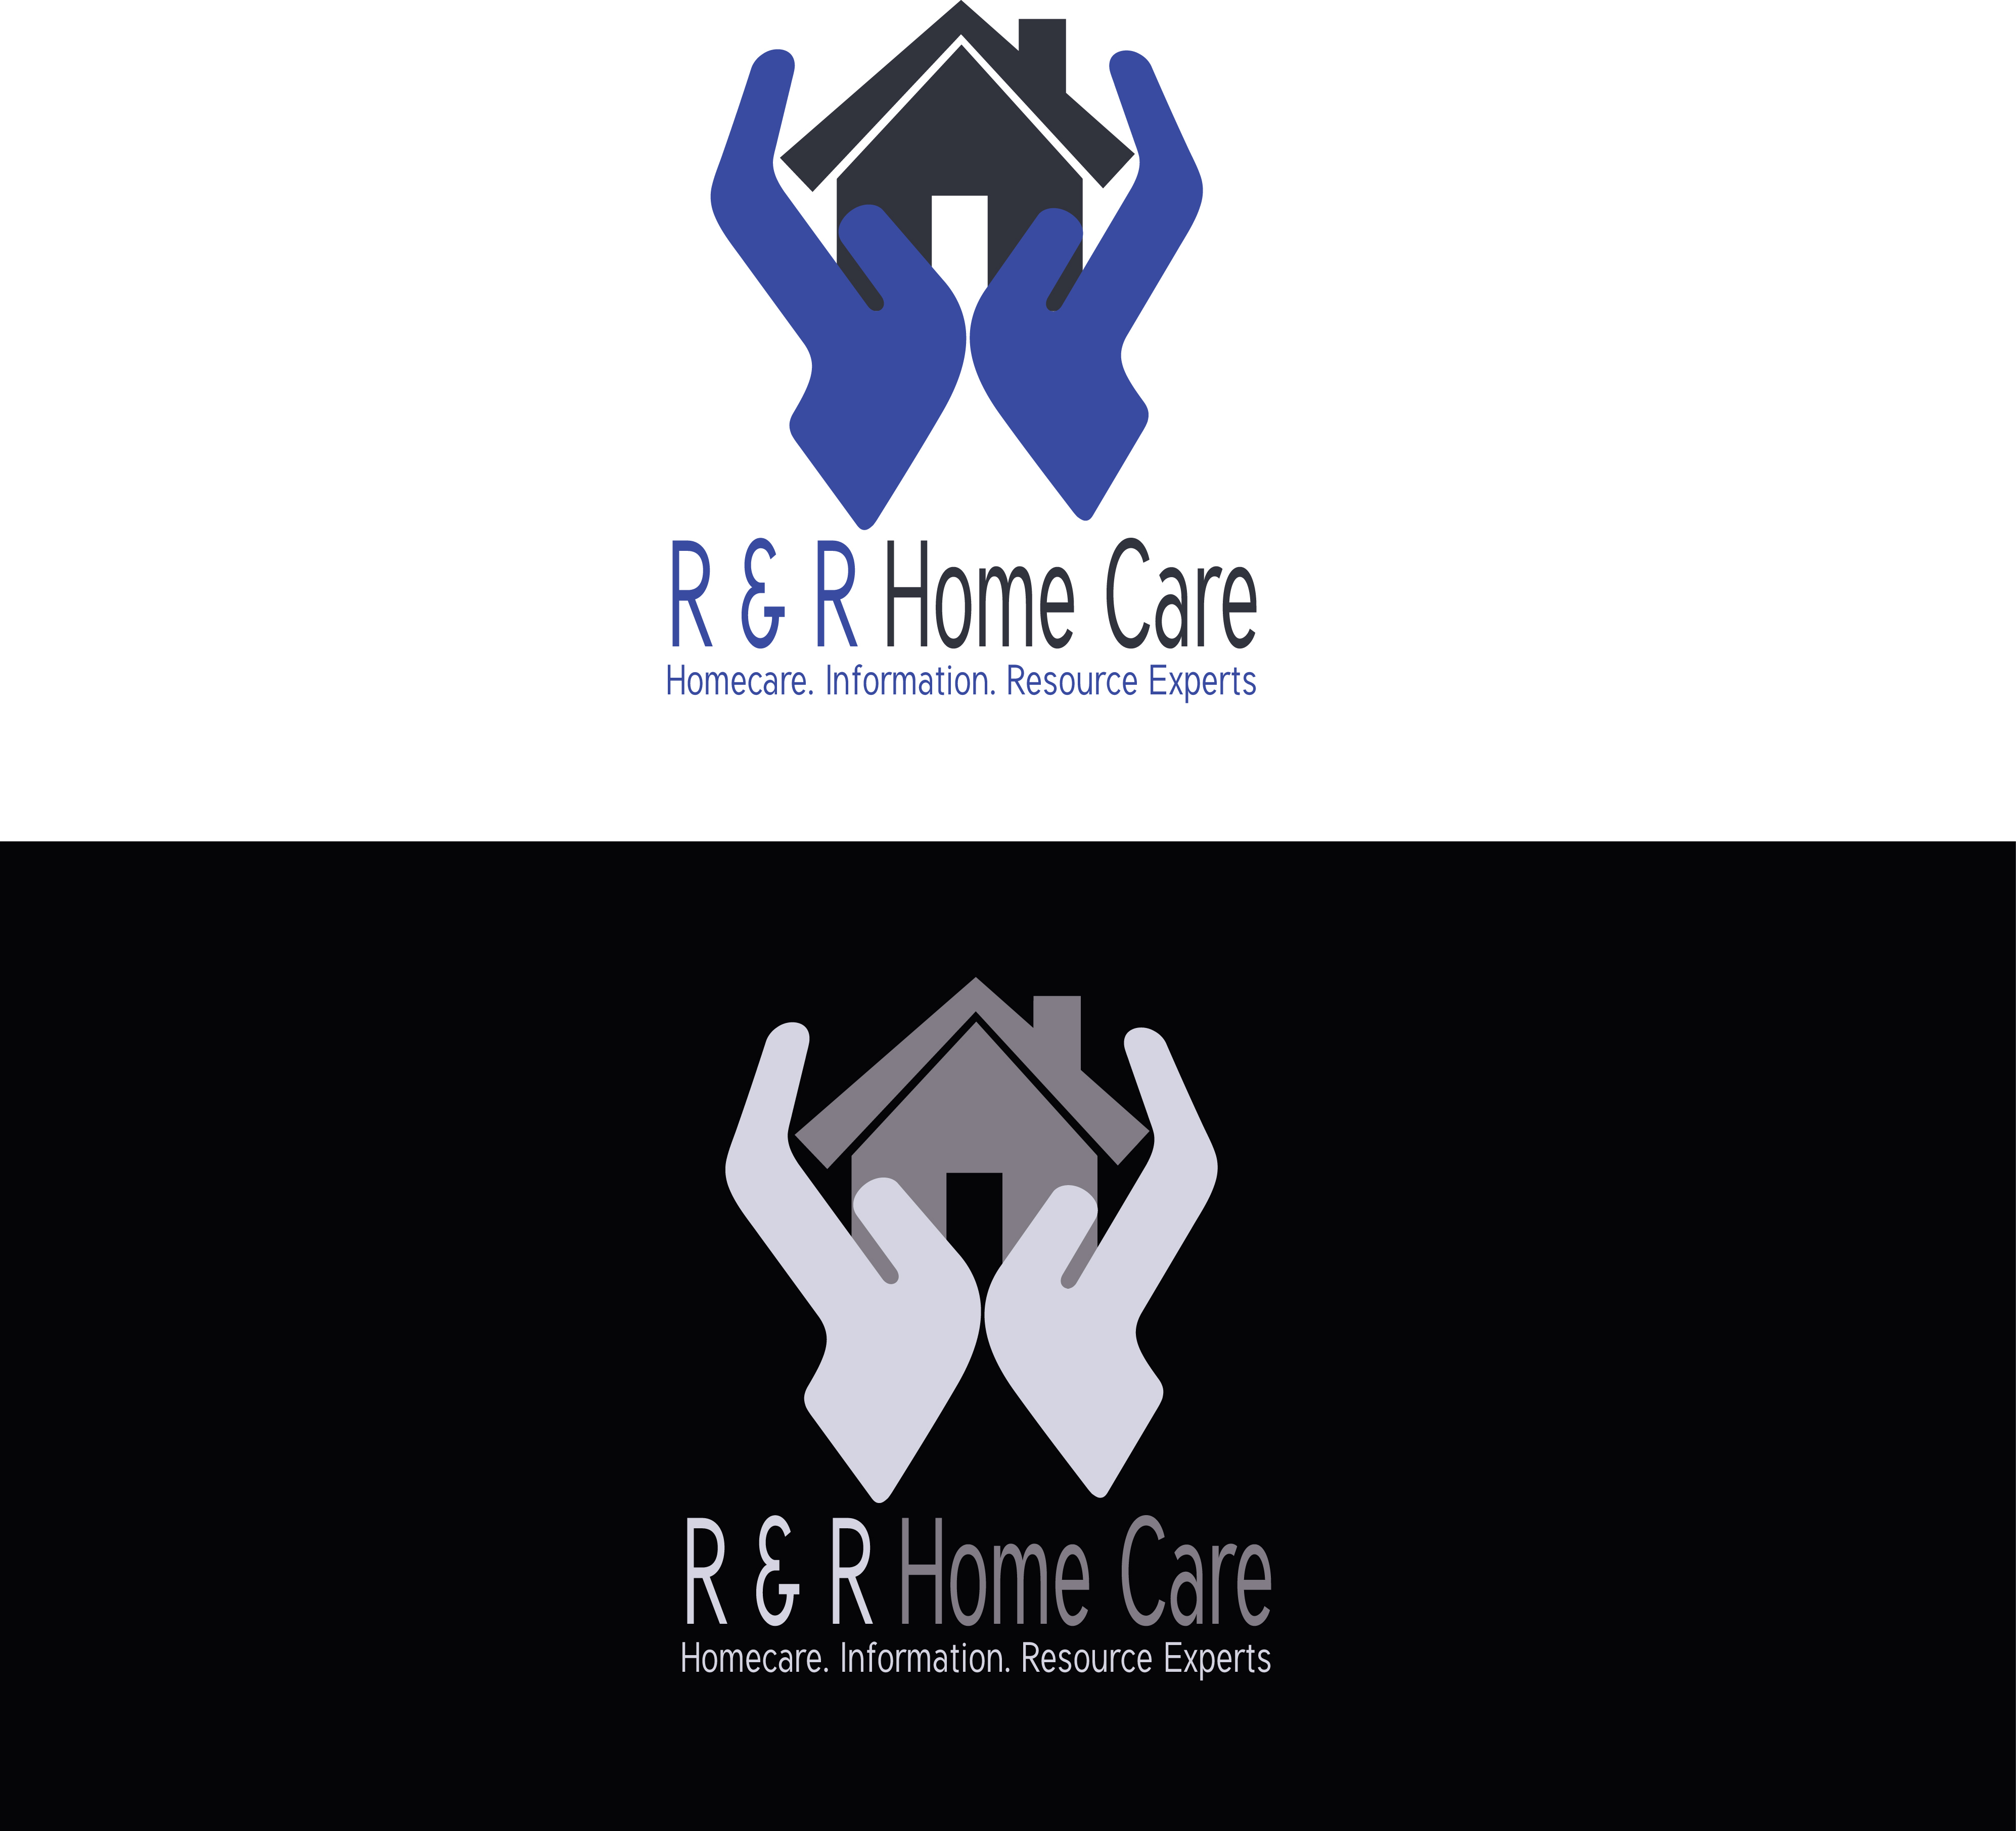 Logo Design by Faisal Javed - Entry No. 136 in the Logo Design Contest Imaginative Logo Design for RNR HomeCare.